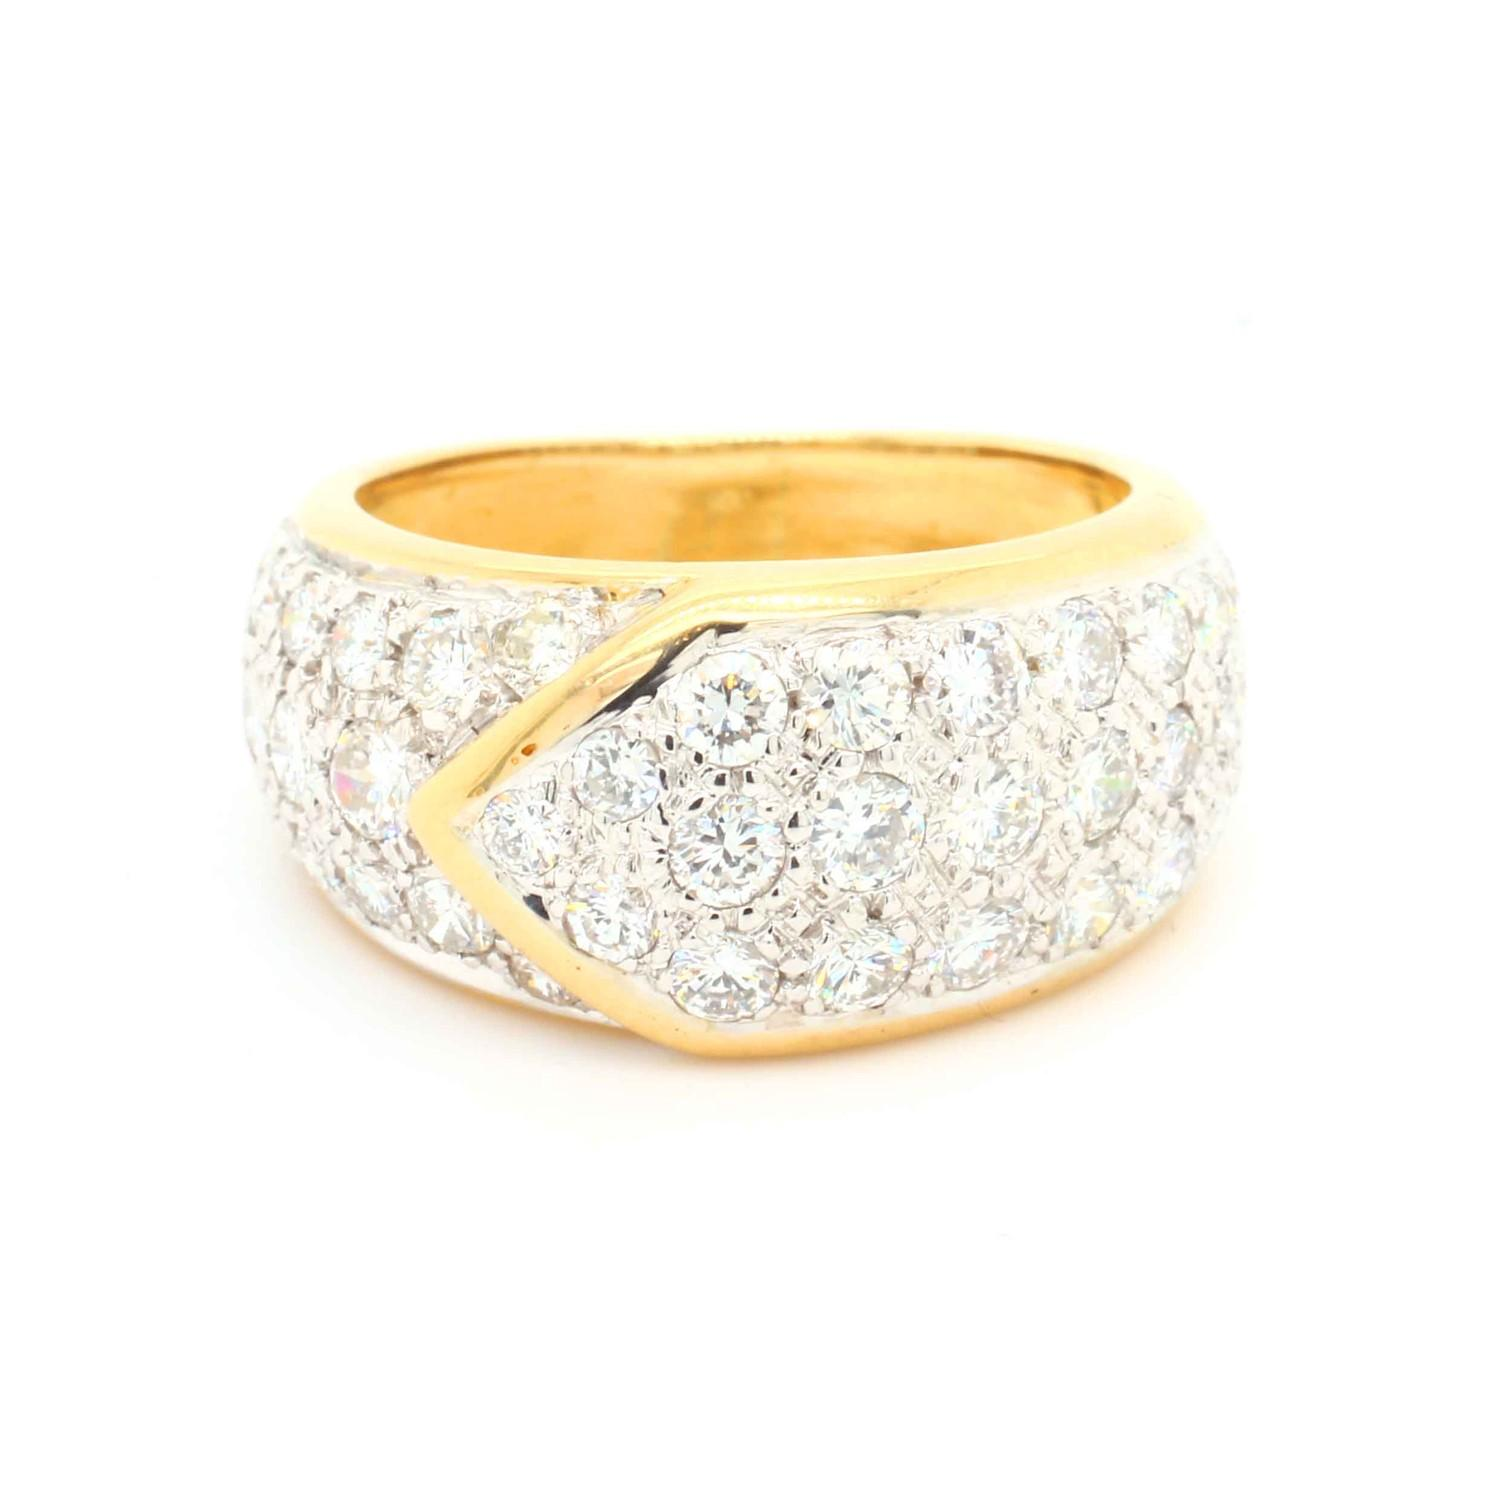 A Graff diamond Ribbon Ring, Contemporary pave set diamond buckle ring mounted in 18ct gold and - Image 2 of 4